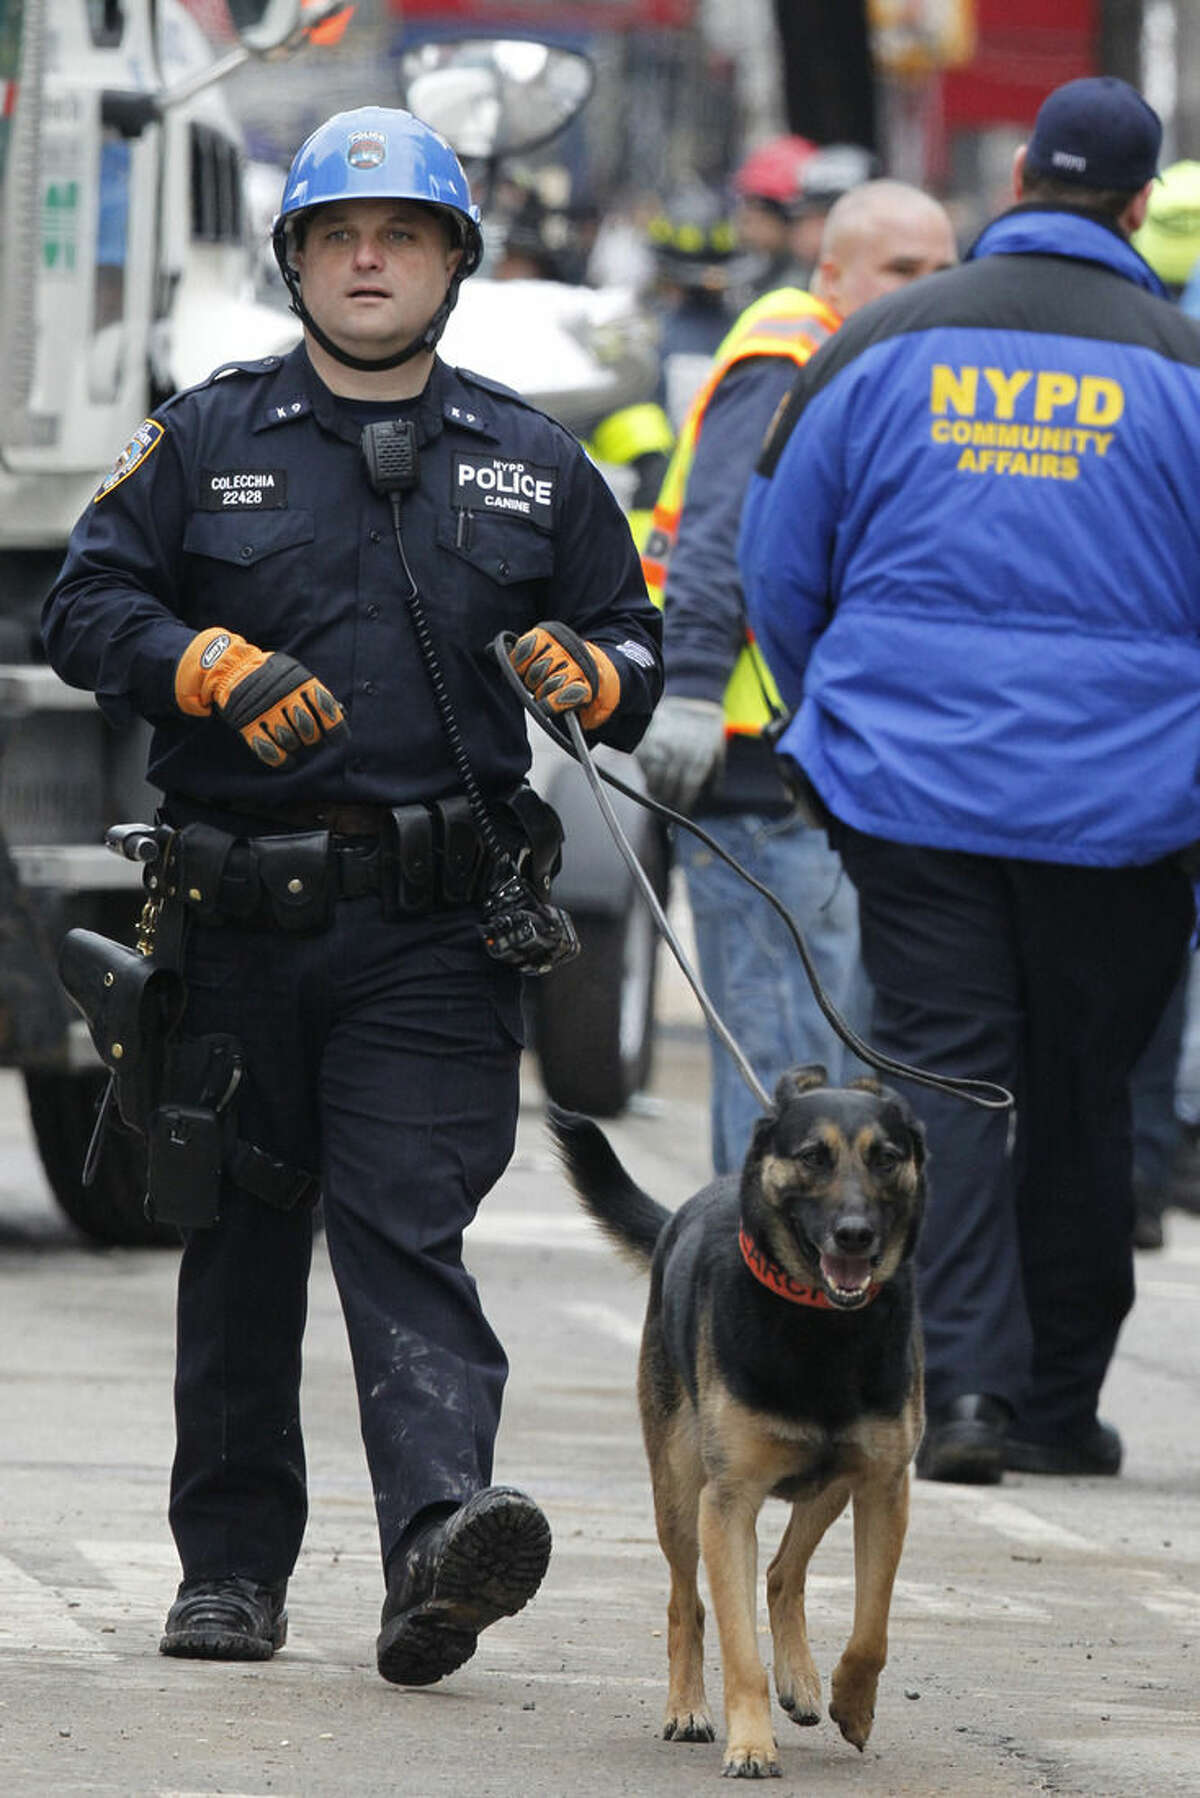 A search dog walks around the site of a building collapse in the East Village neighborhood of New York, Friday, March 27, 2015. Nineteen people were injured, four critically, after the powerful blast and fire sent flames soaring and debris flying Thursday afternoon. Preliminary evidence suggested that a gas explosion amid plumbing and gas work inside the building was to blame. (AP Photo/Julio Cortez)